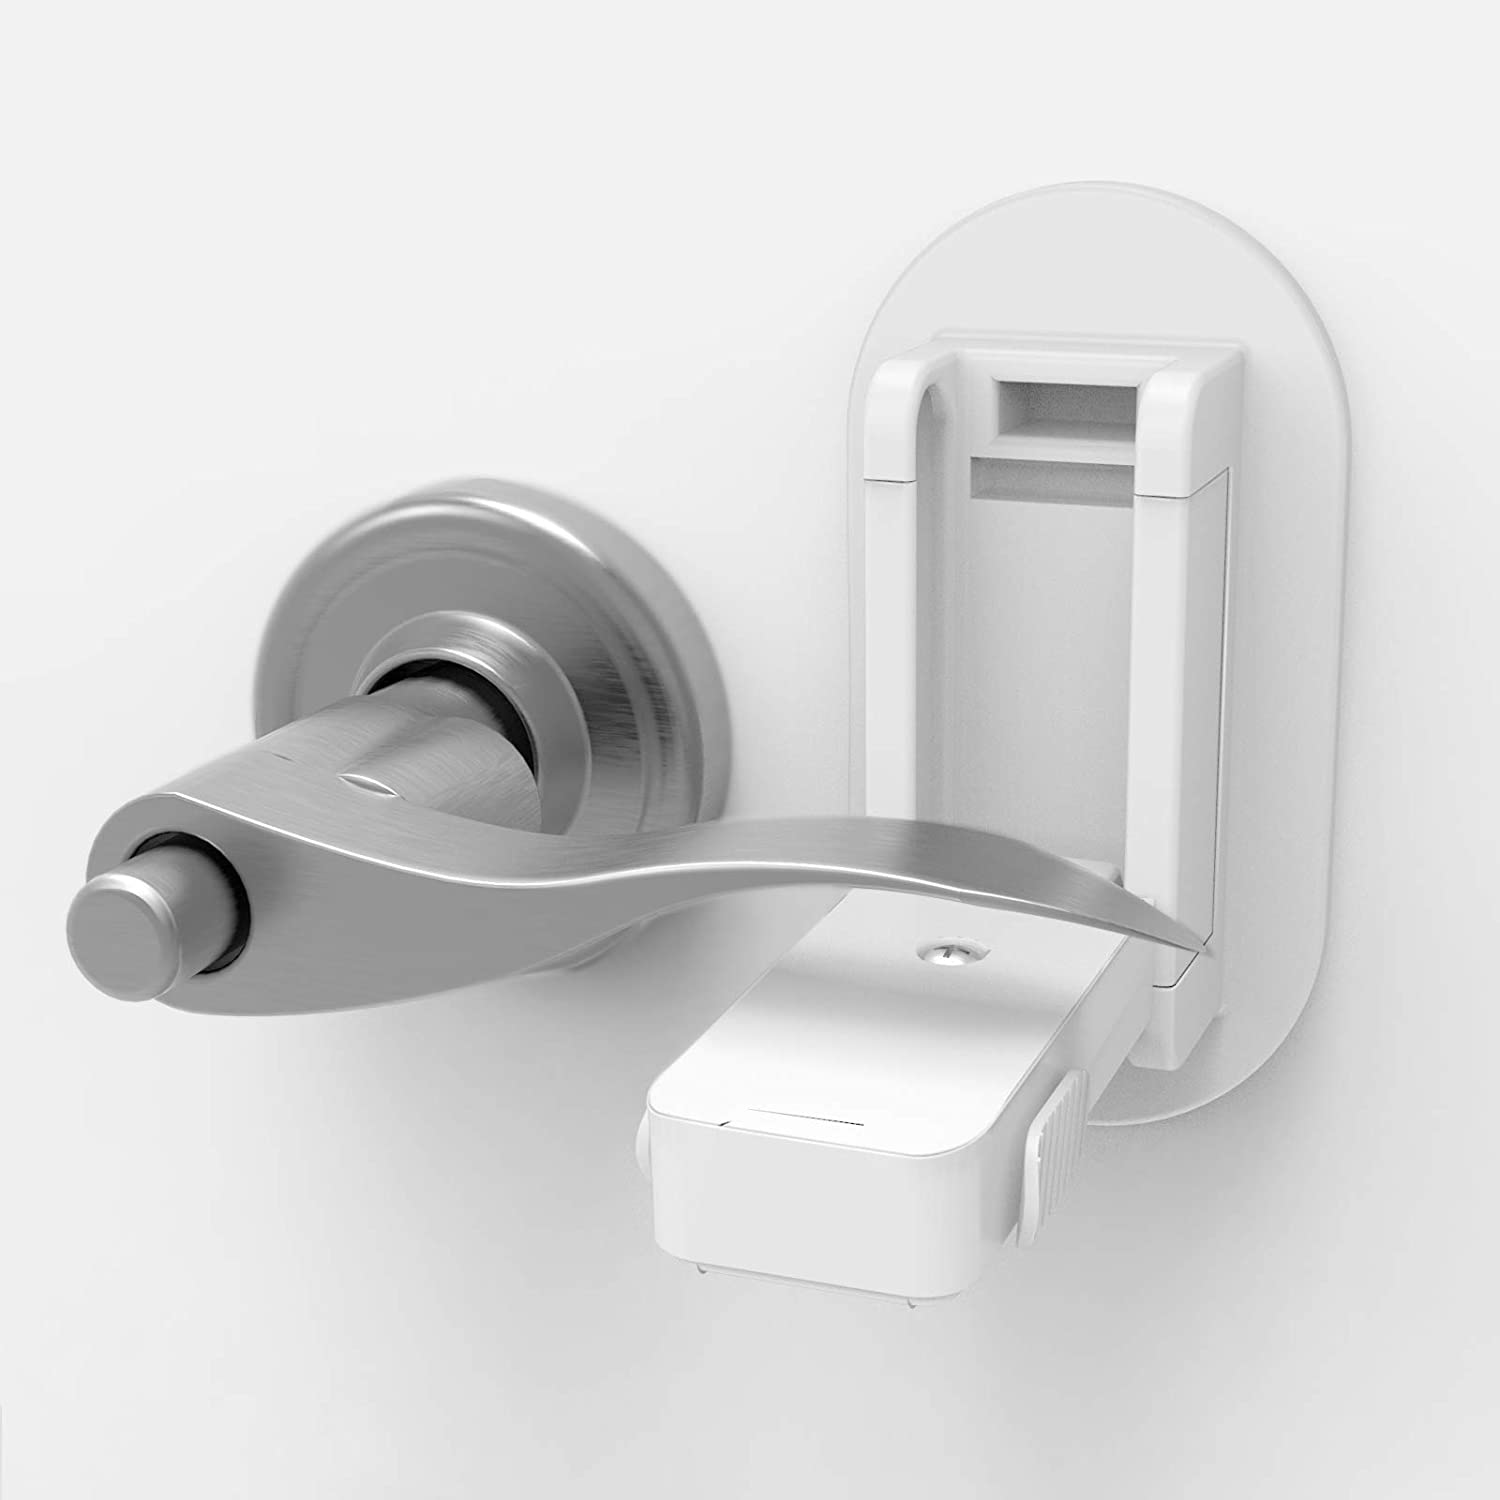 Child Proof Door Lever Lock Baby Super Shipping included to - Practical Max 86% OFF